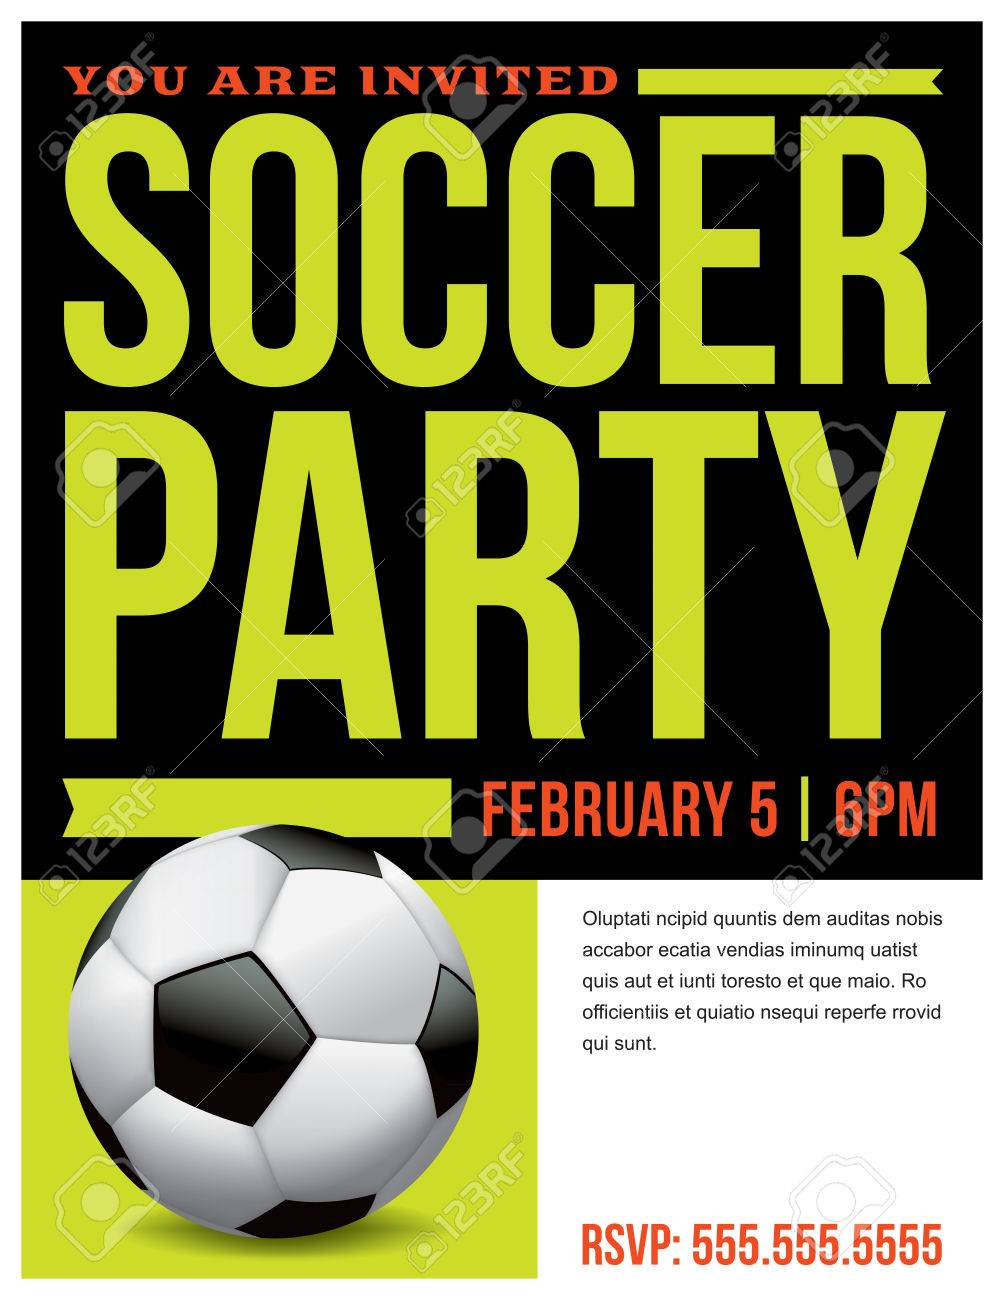 A Flyer For A Soccer Party Invitation Template. Royalty Free ...